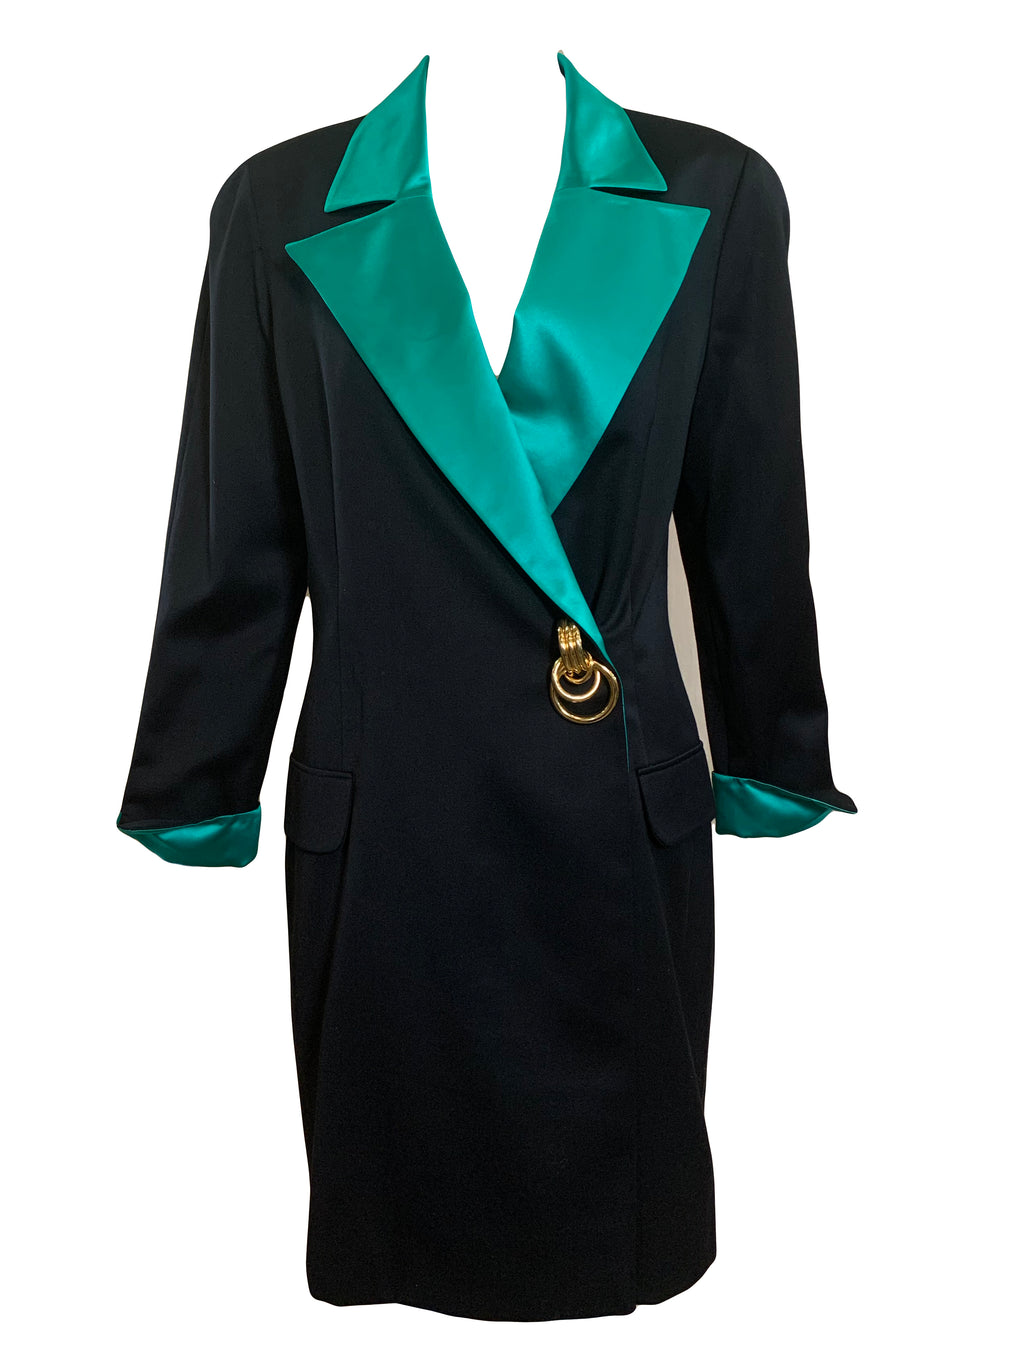 Genny 80s Black and Green Satin Trimmed Evening Jacket/Coat  FRONT 1 of 5